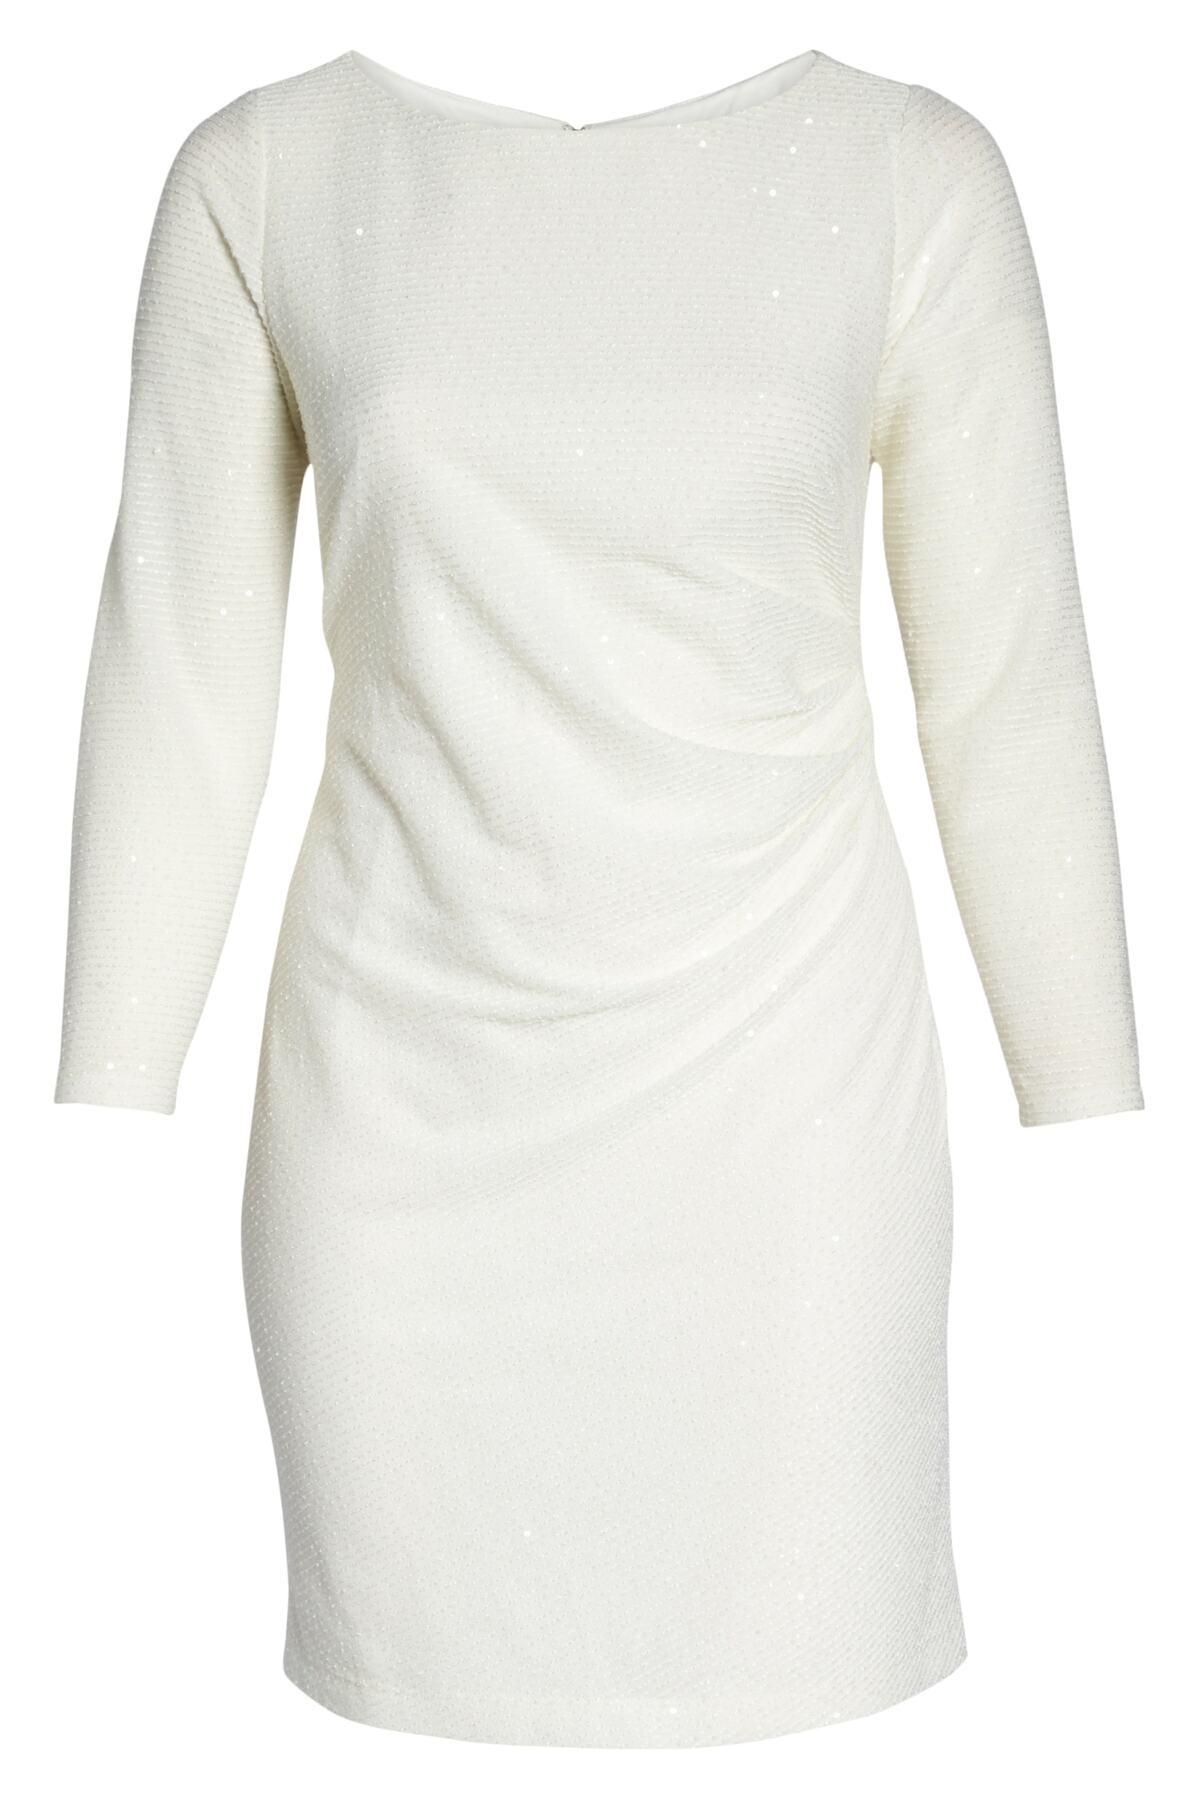 Vince Camuto White Sequin & Ruched Body-con Dress (plus Size)